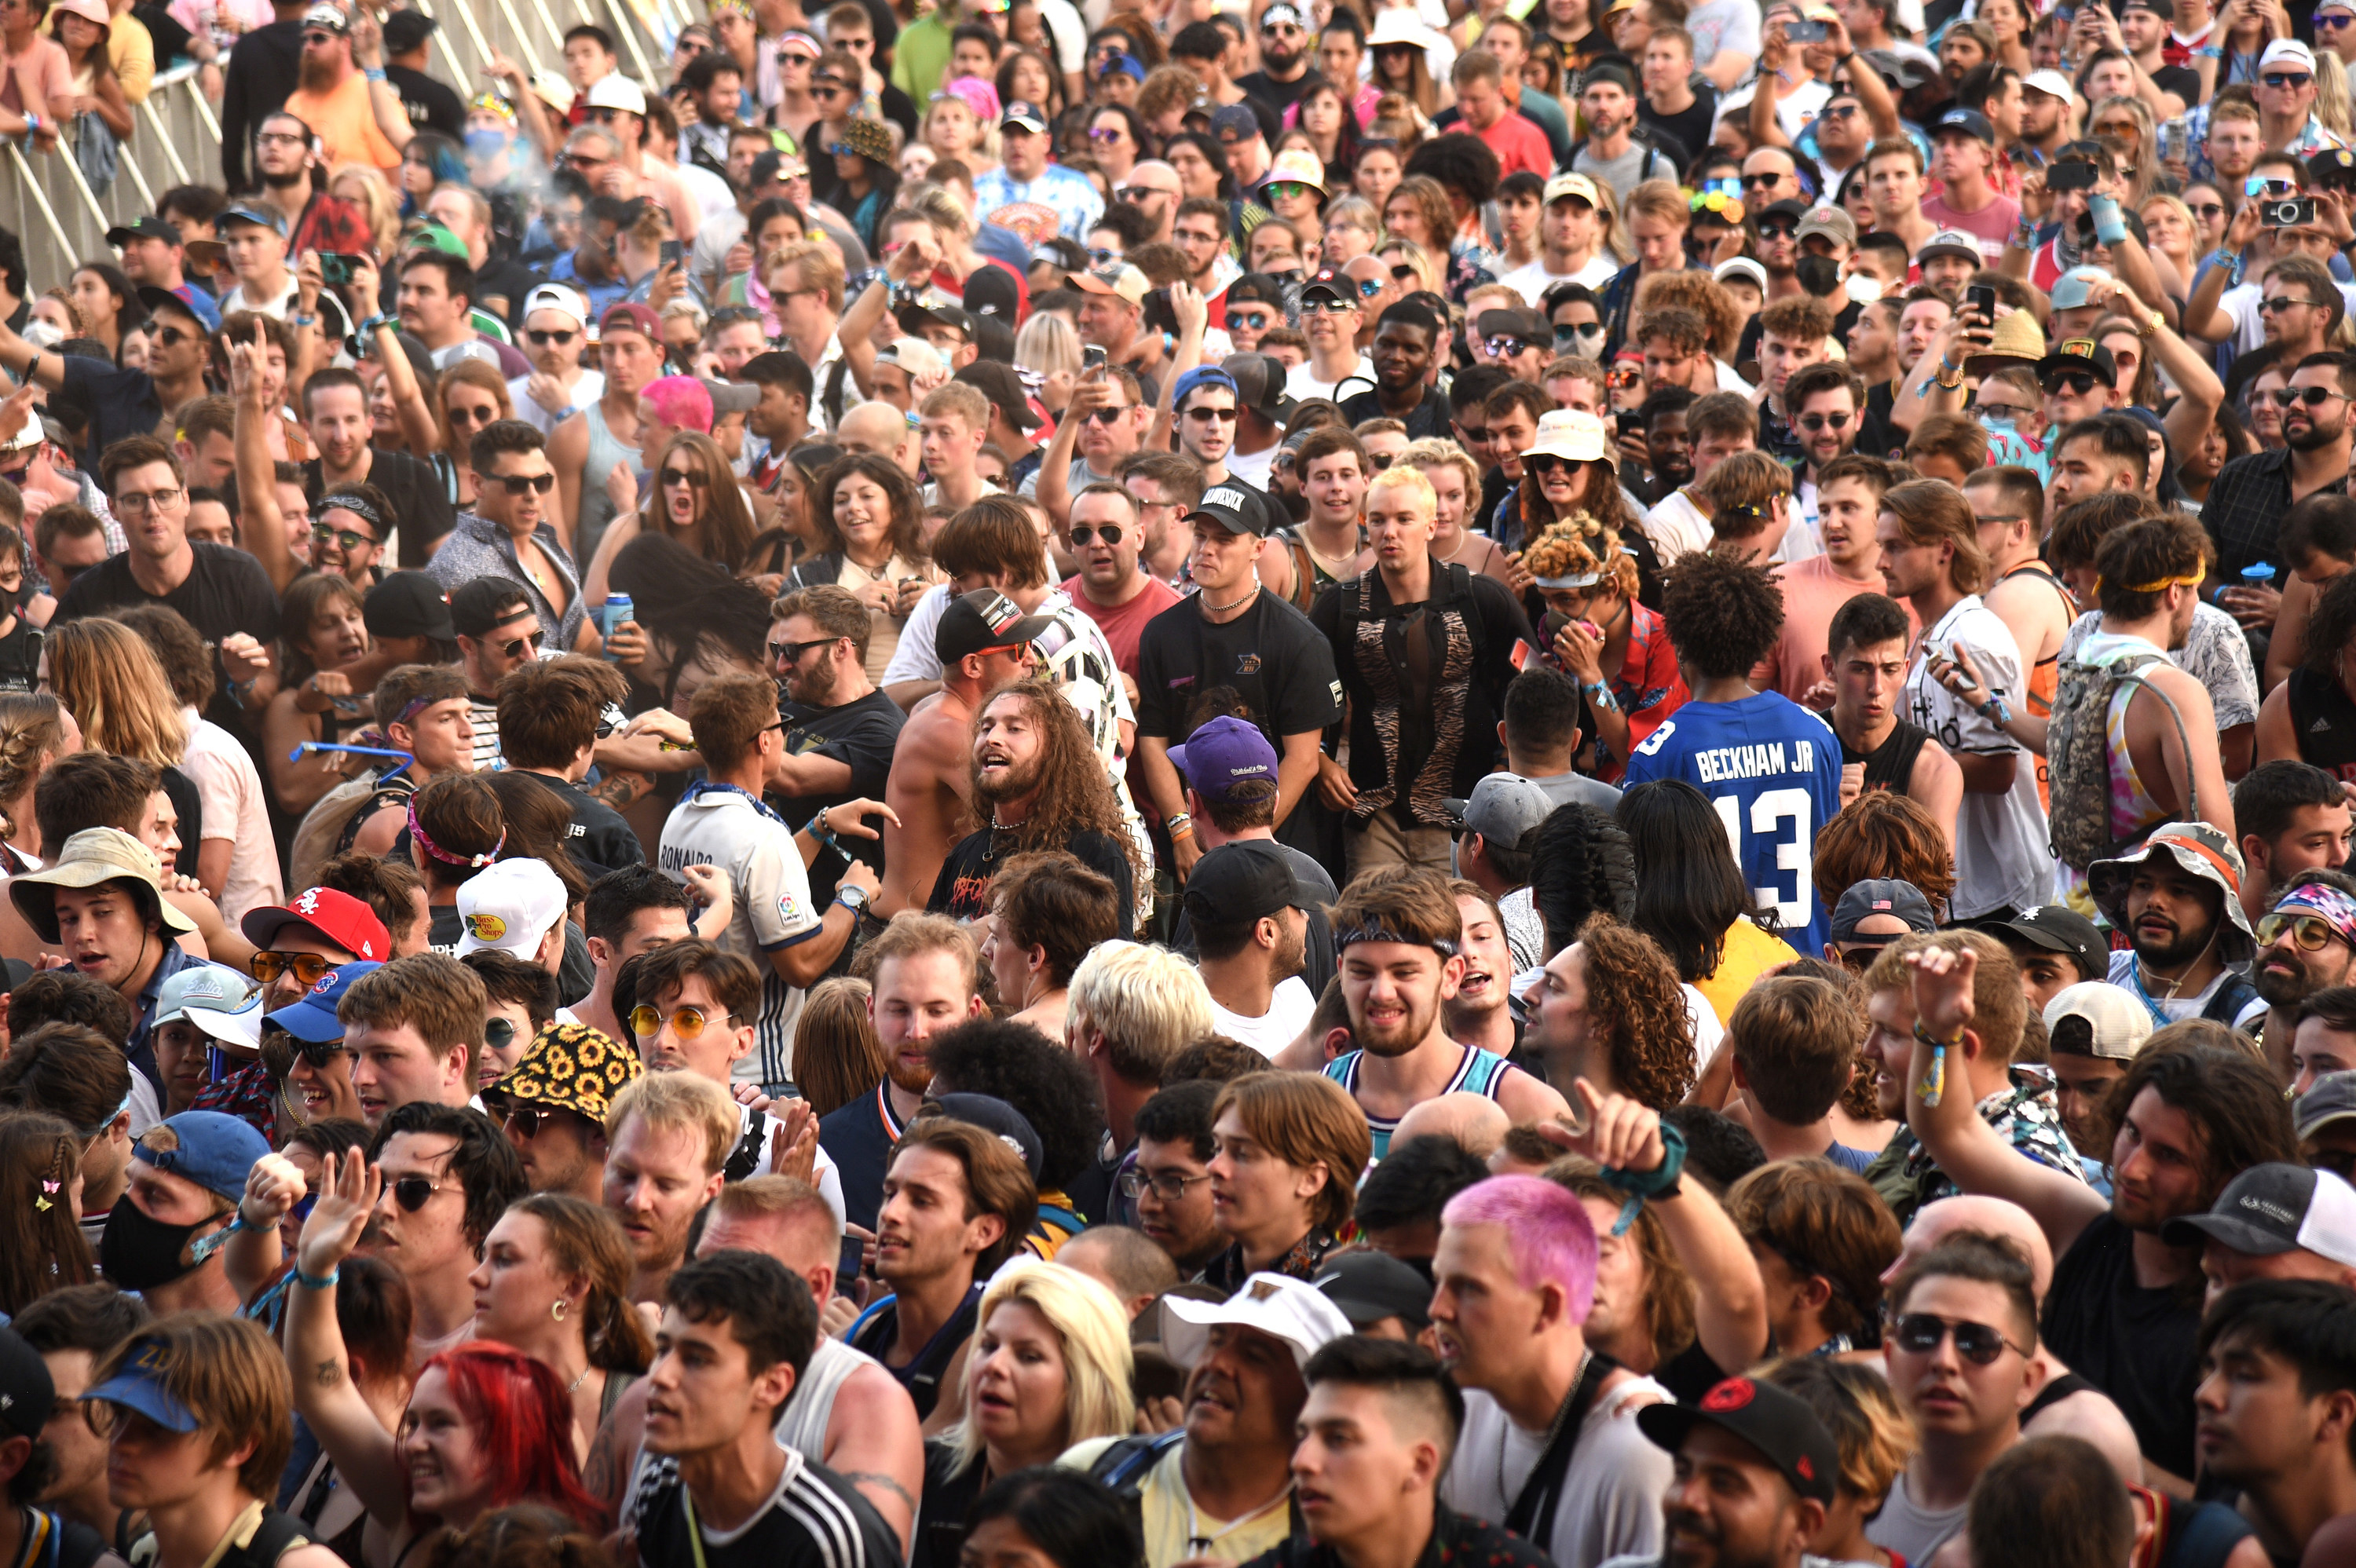 A candid view of a crowd of people at Lollapalooza music festival in Chicago.